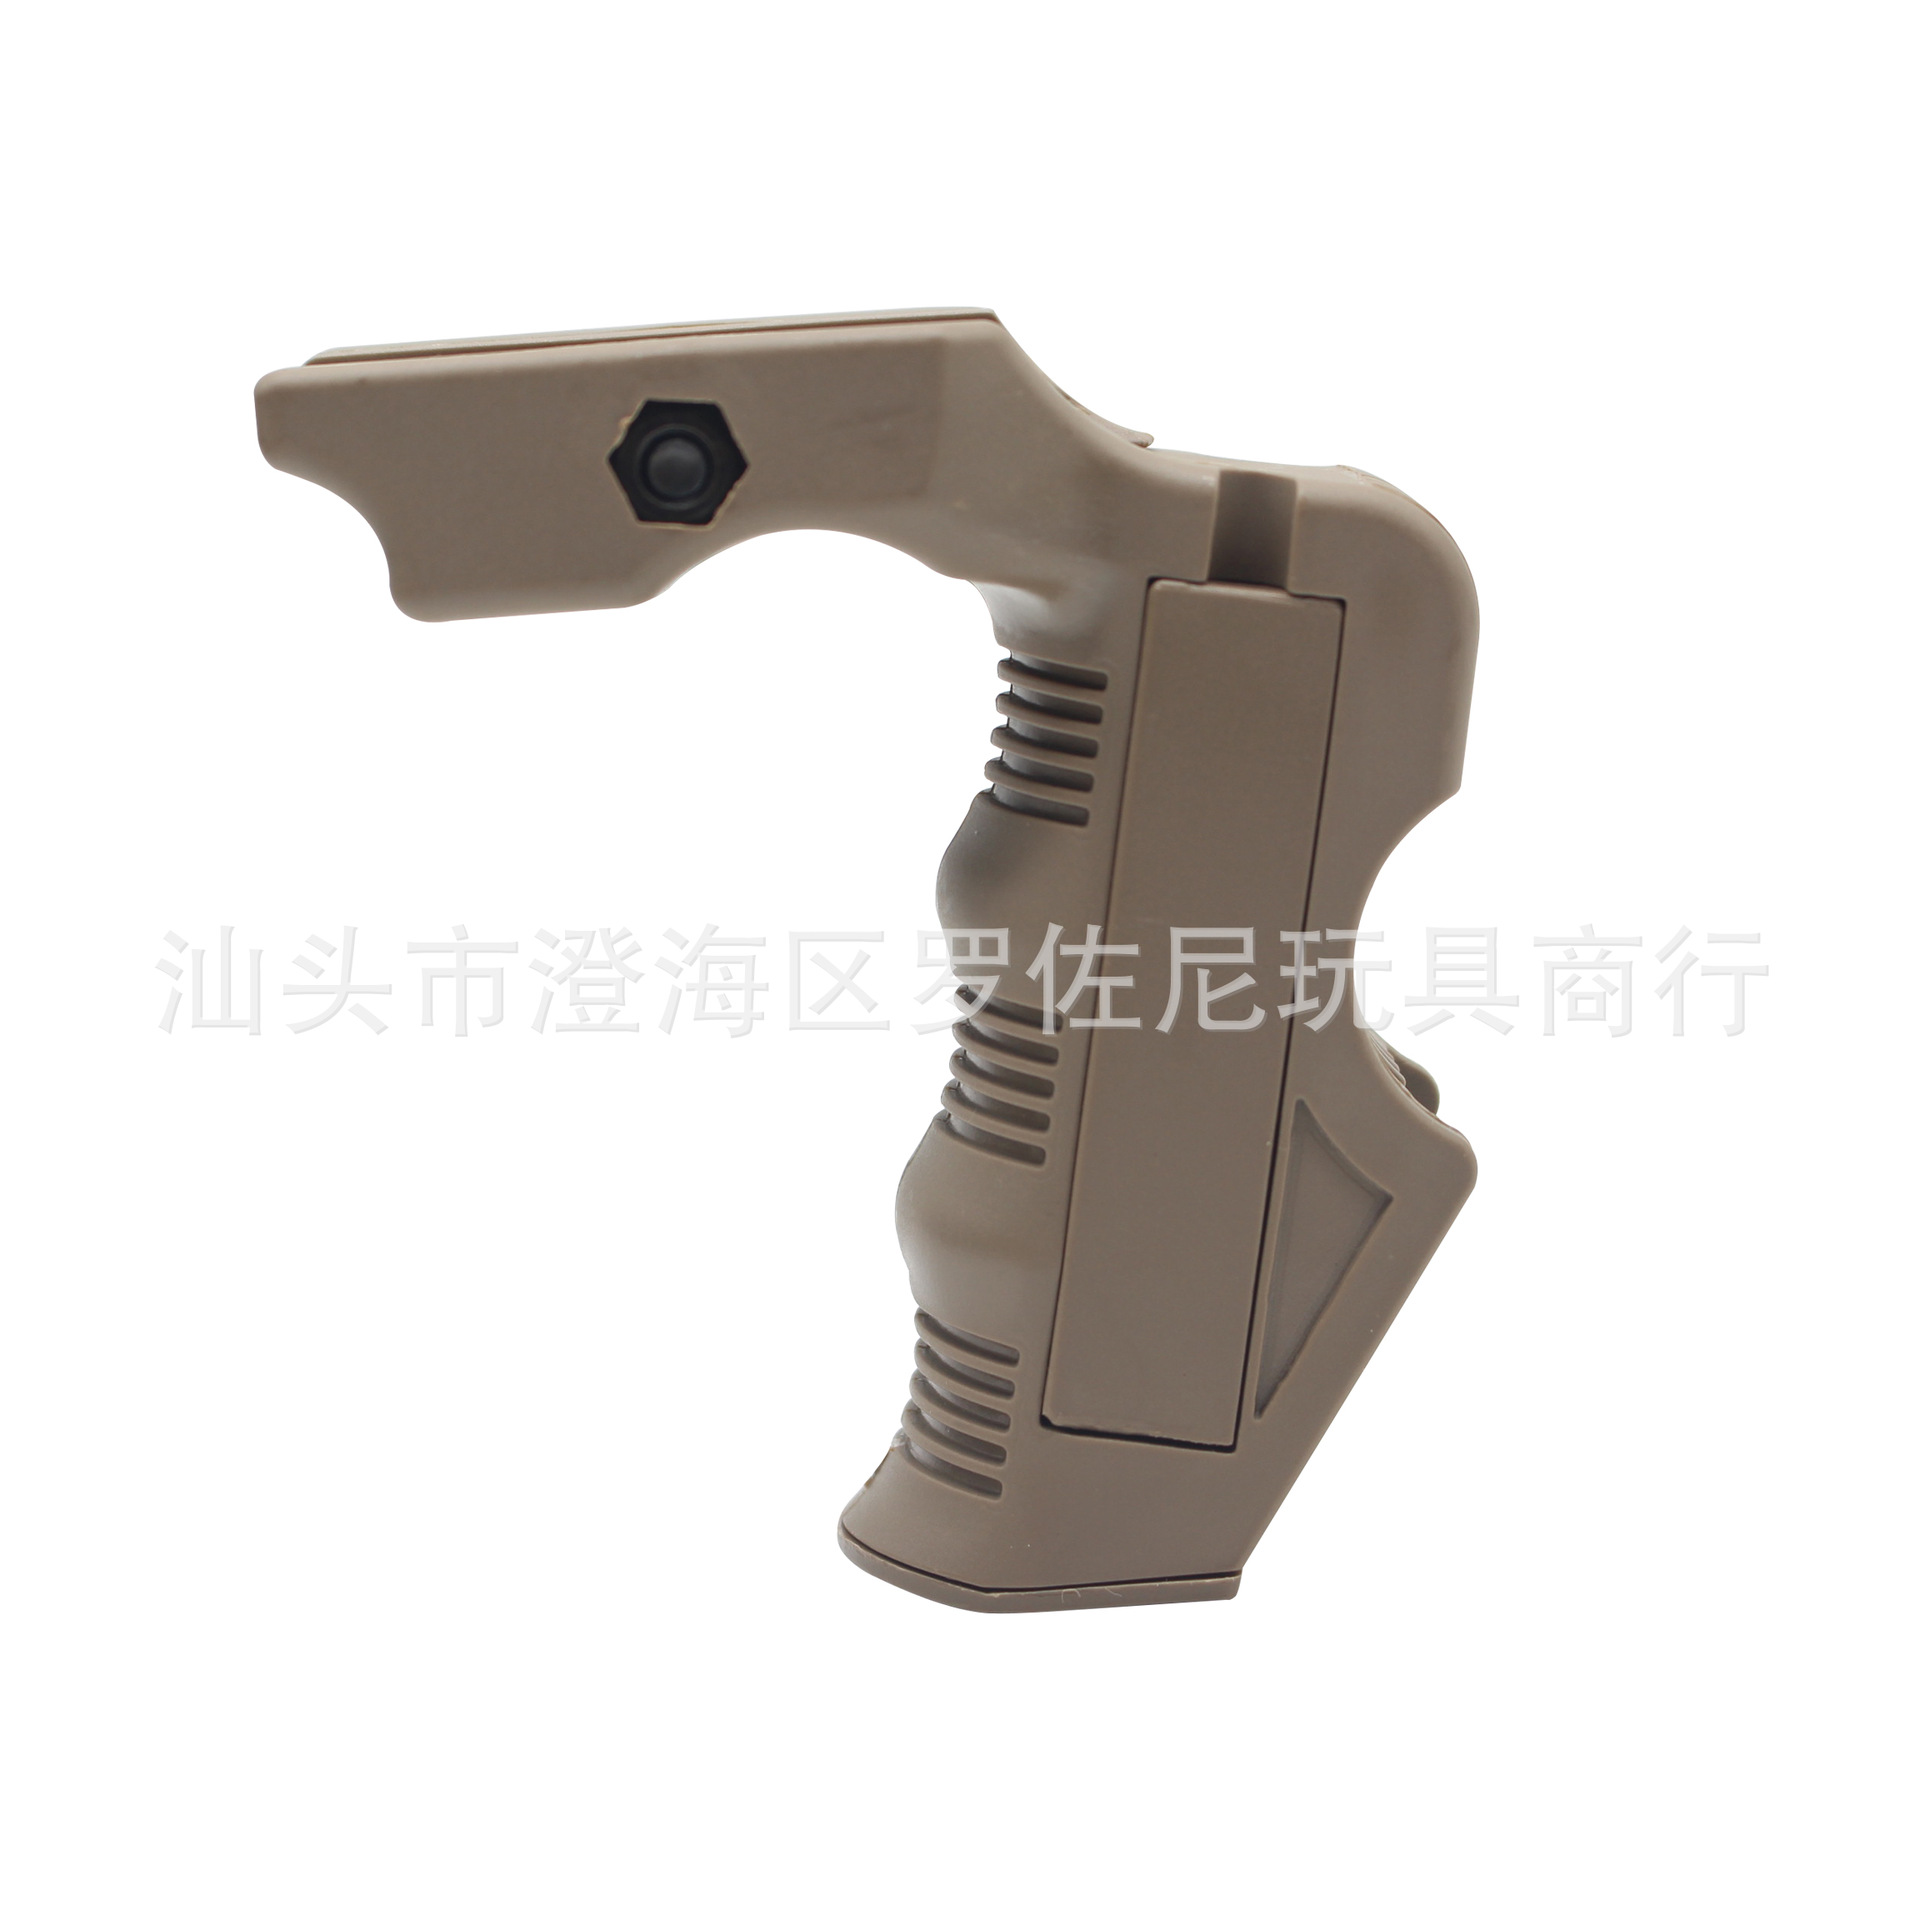 Hot Water Blaster Accessories Nylon Grip CAA Front Grip Jin Ming 8 Generation 9 Generation Accessories Paintball Accessories